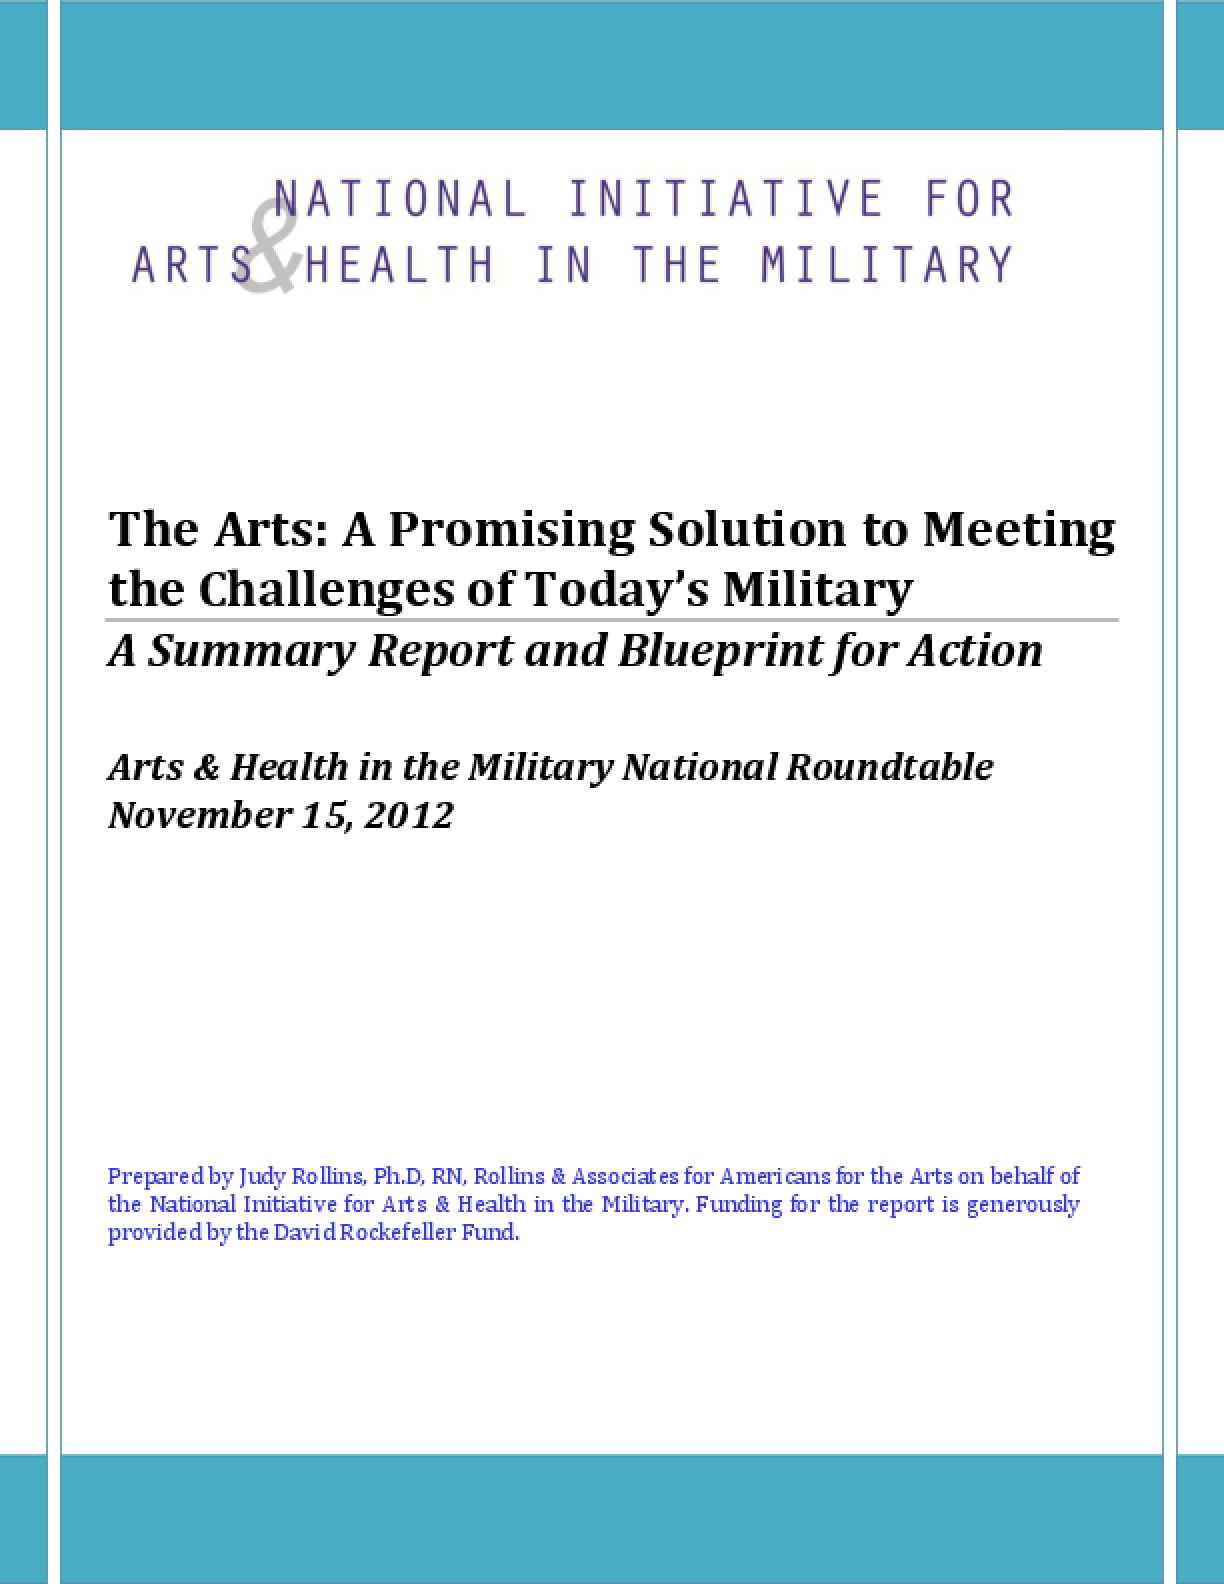 The Arts: A Promising Solution to Meeting the Challenges of Today's Military, A Summary Report and Blueprint for Action